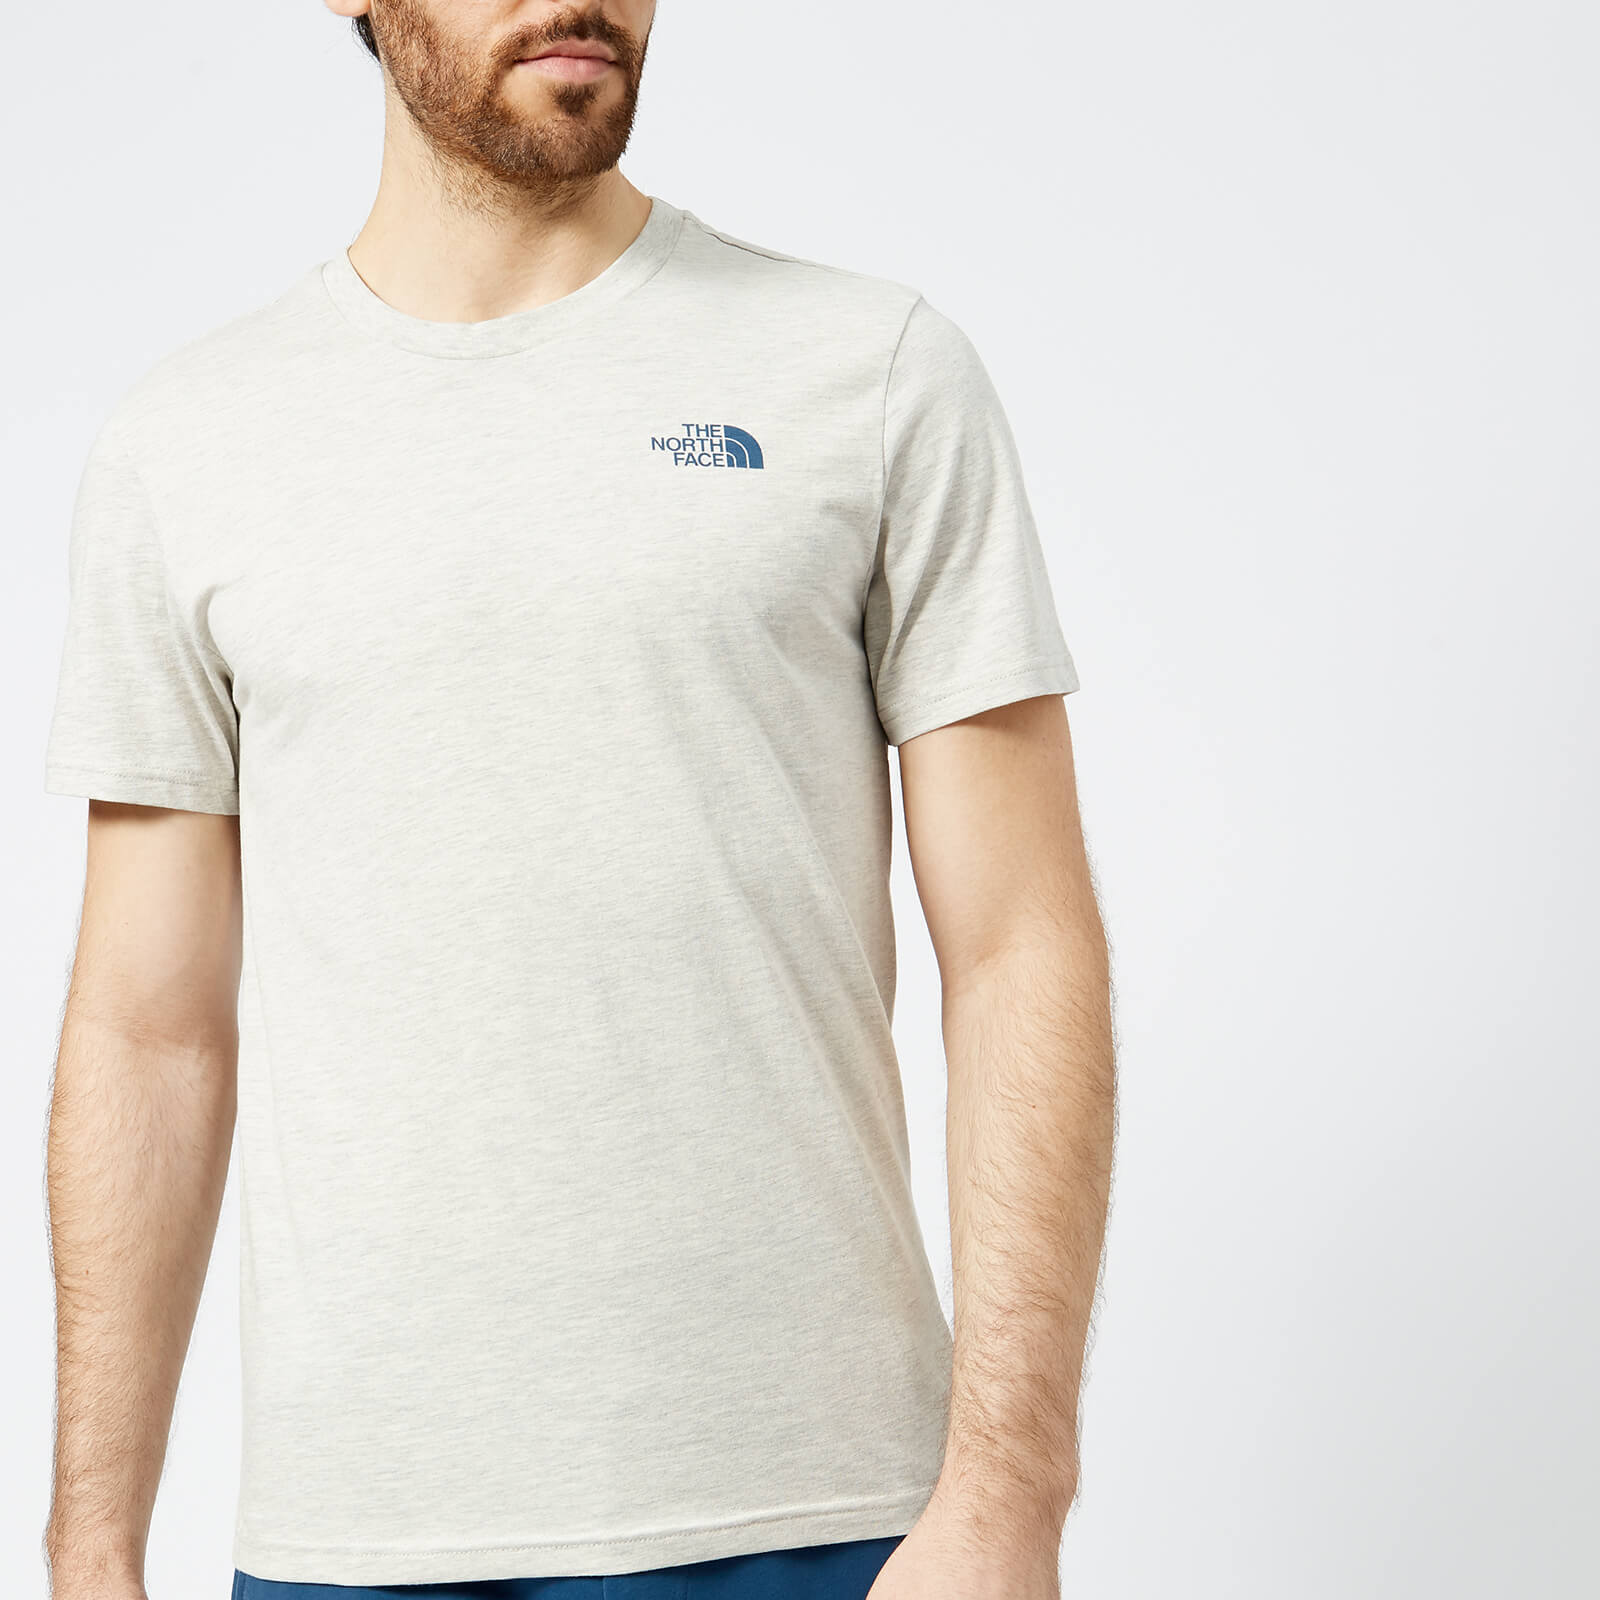 5c0d6b30d37c The North Face Men s Short Sleeve Simple Dome T-Shirt - TNF Oatmeal Heather  Clothing